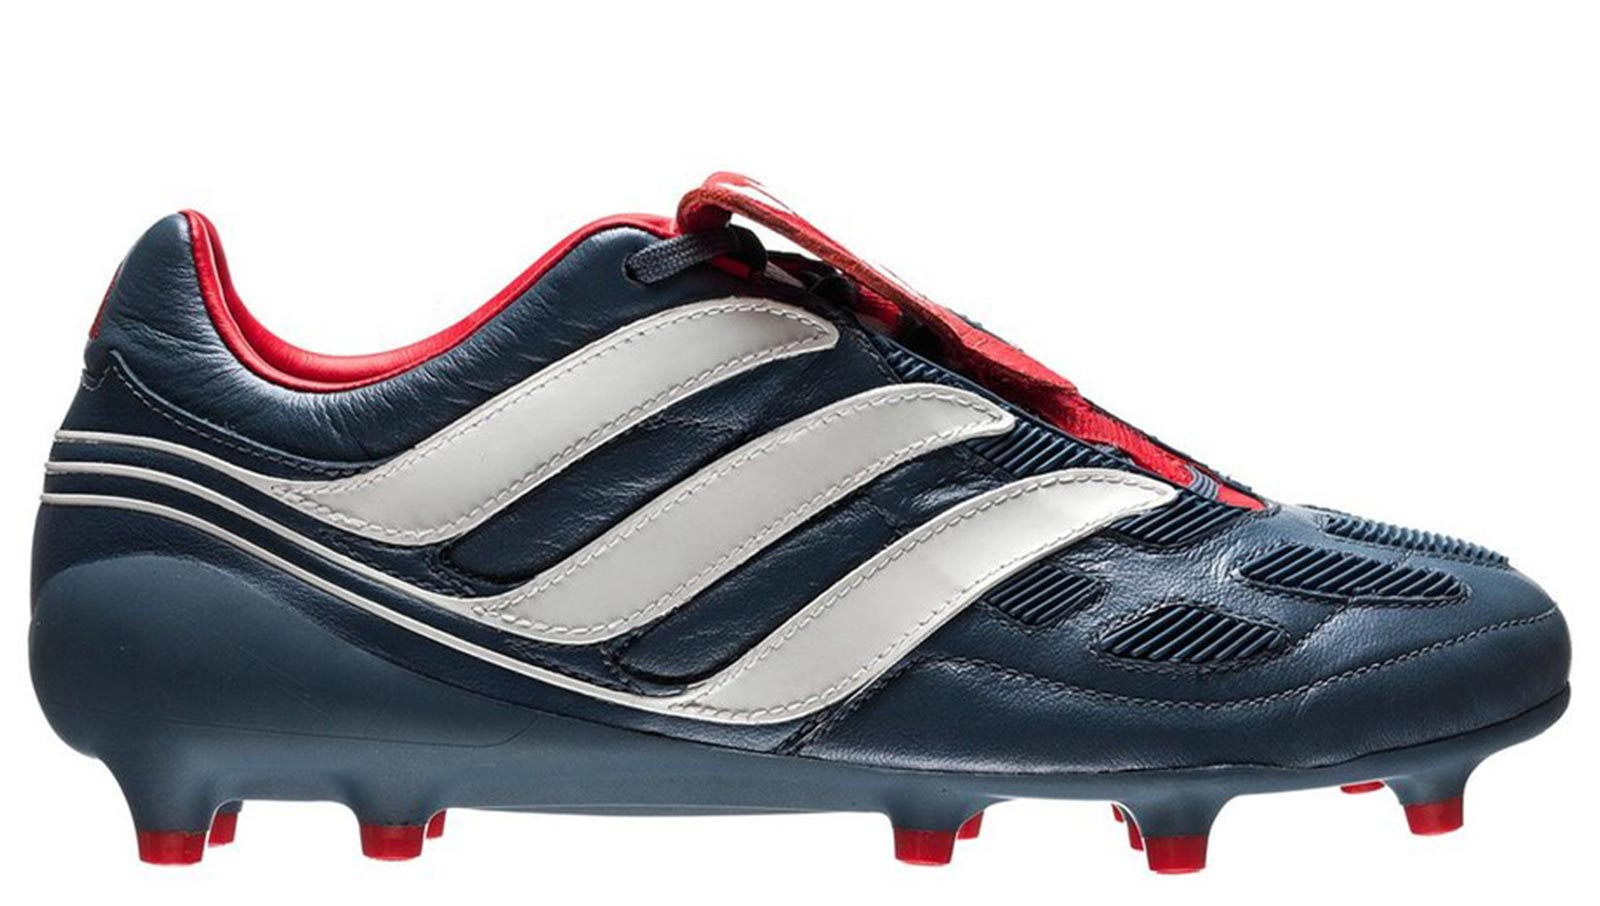 c9275d3e93f0 7 Remakes Since 2017 - Here Are All 11 Adidas Predator Remake Boots ...